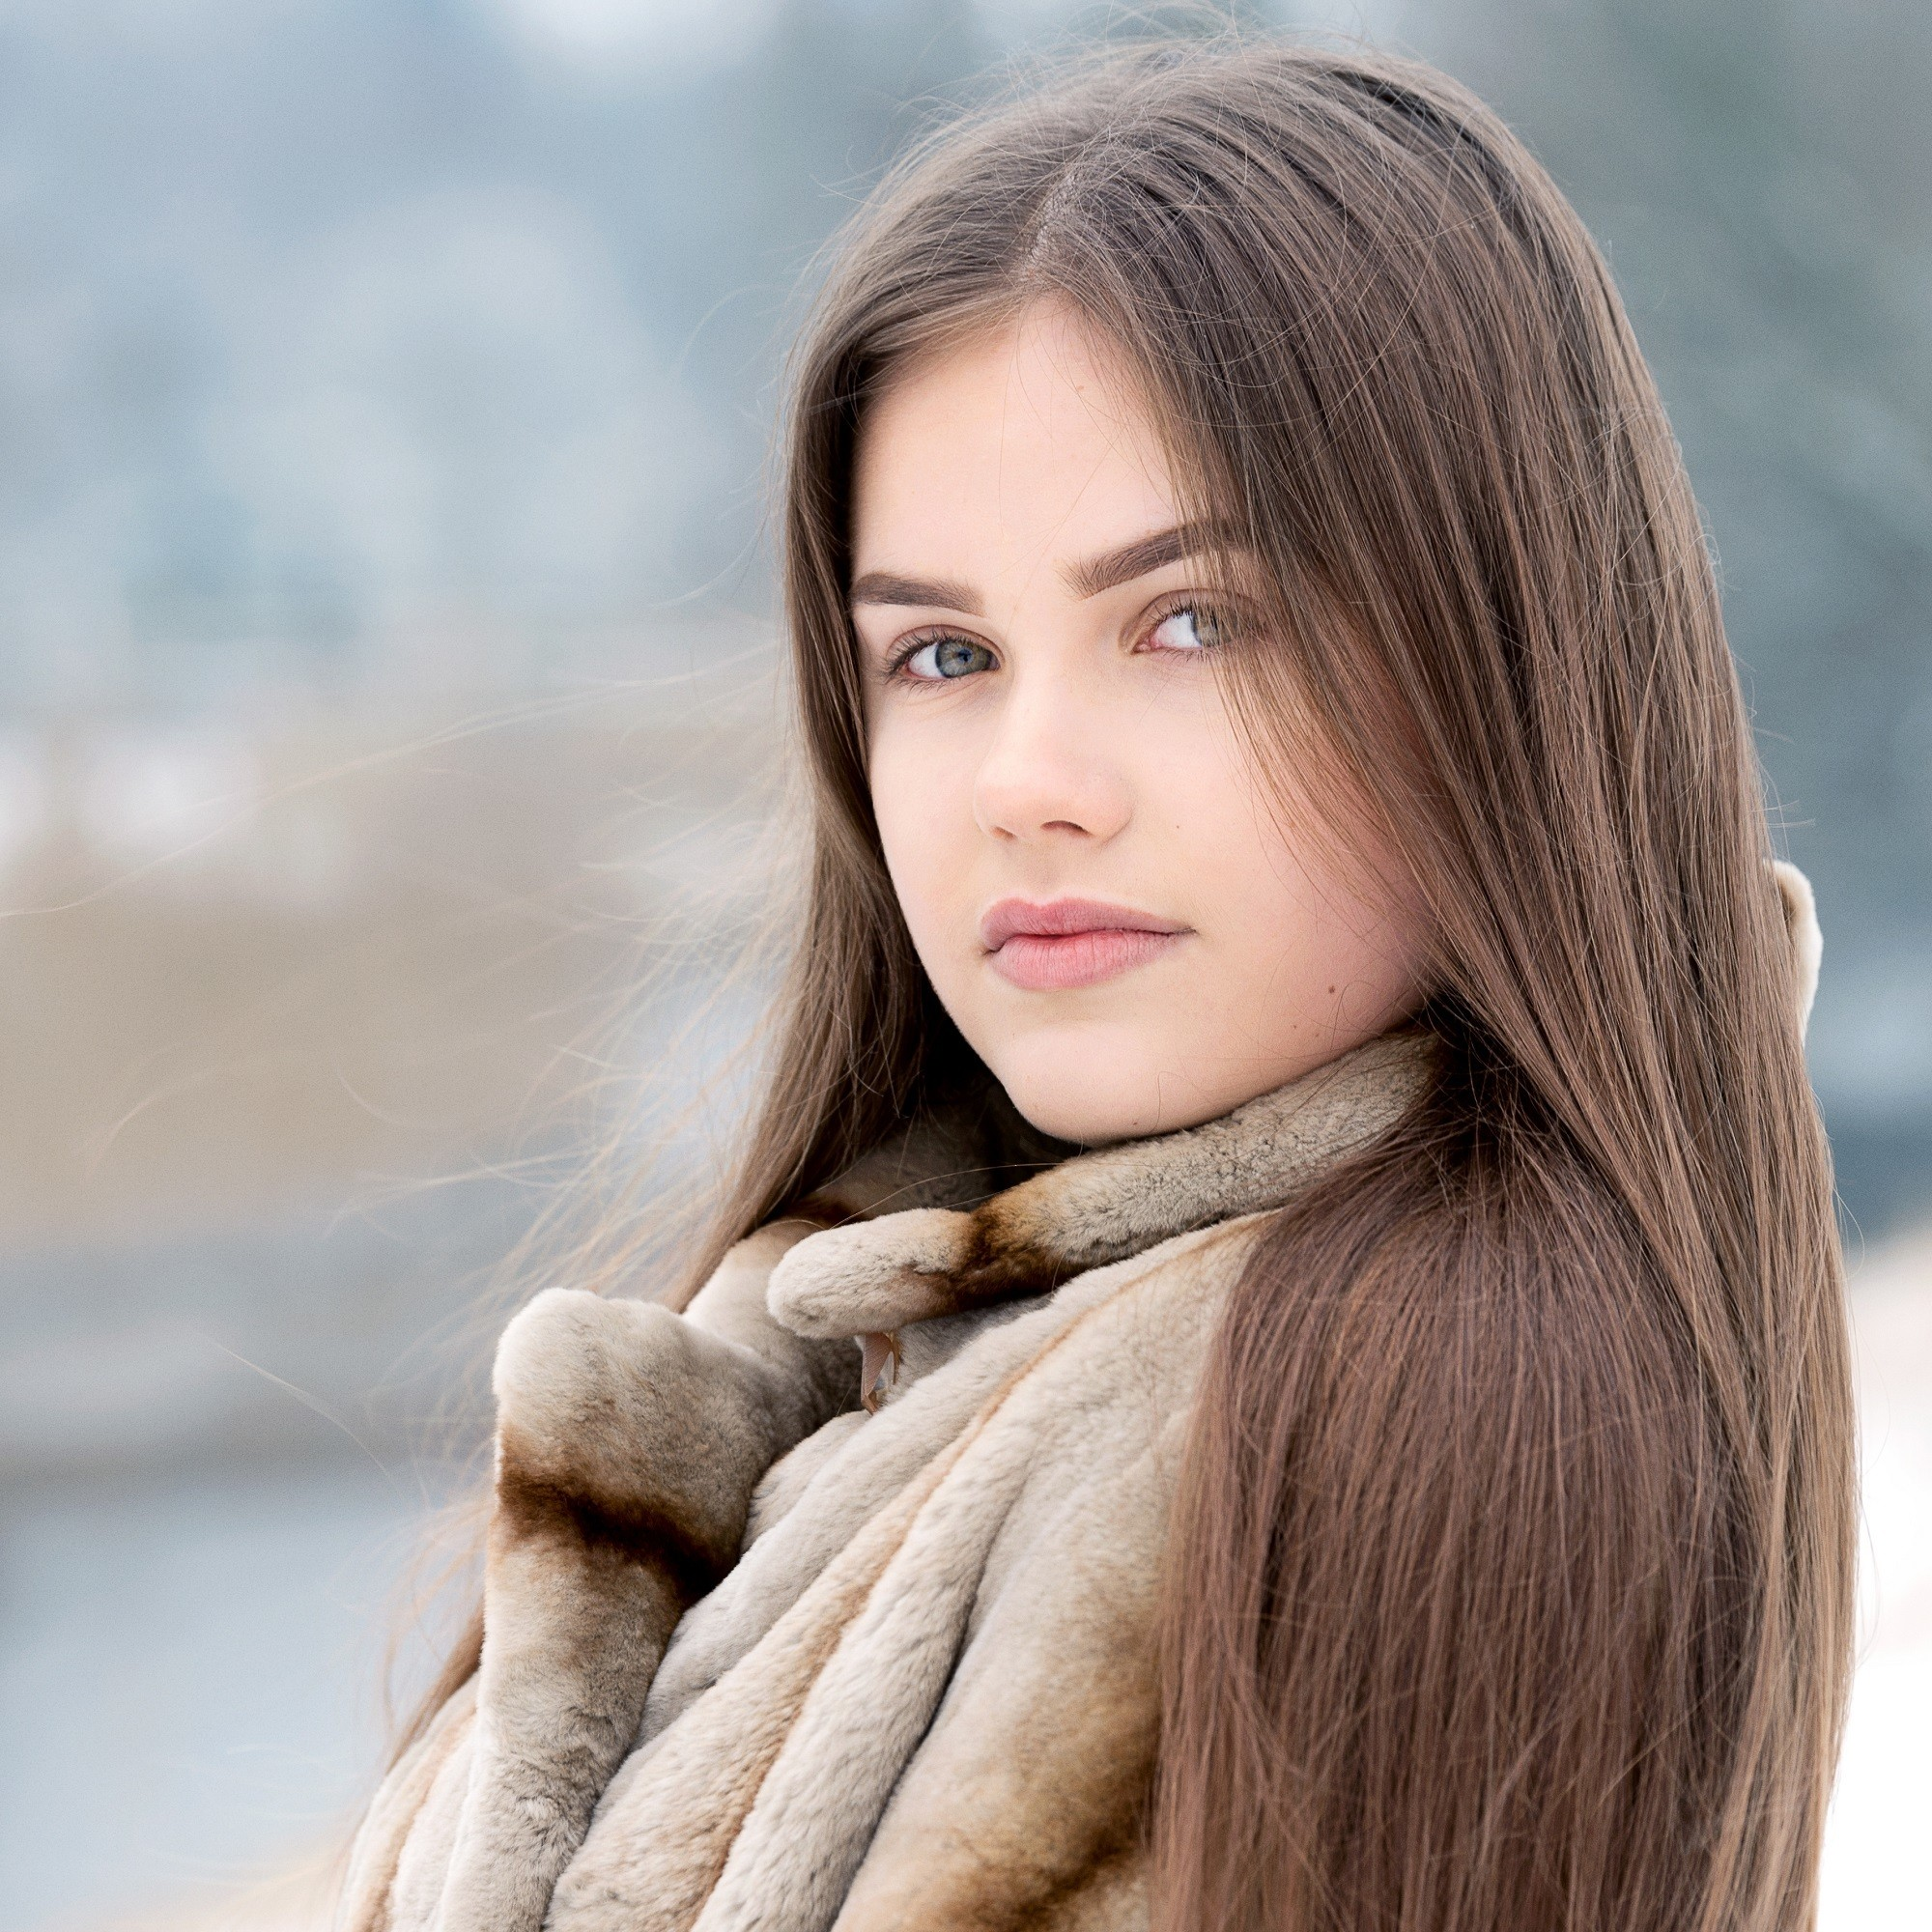 Medium brown hair color: Caucasian woman with long straight ash brown hair wearing a coat outdoors